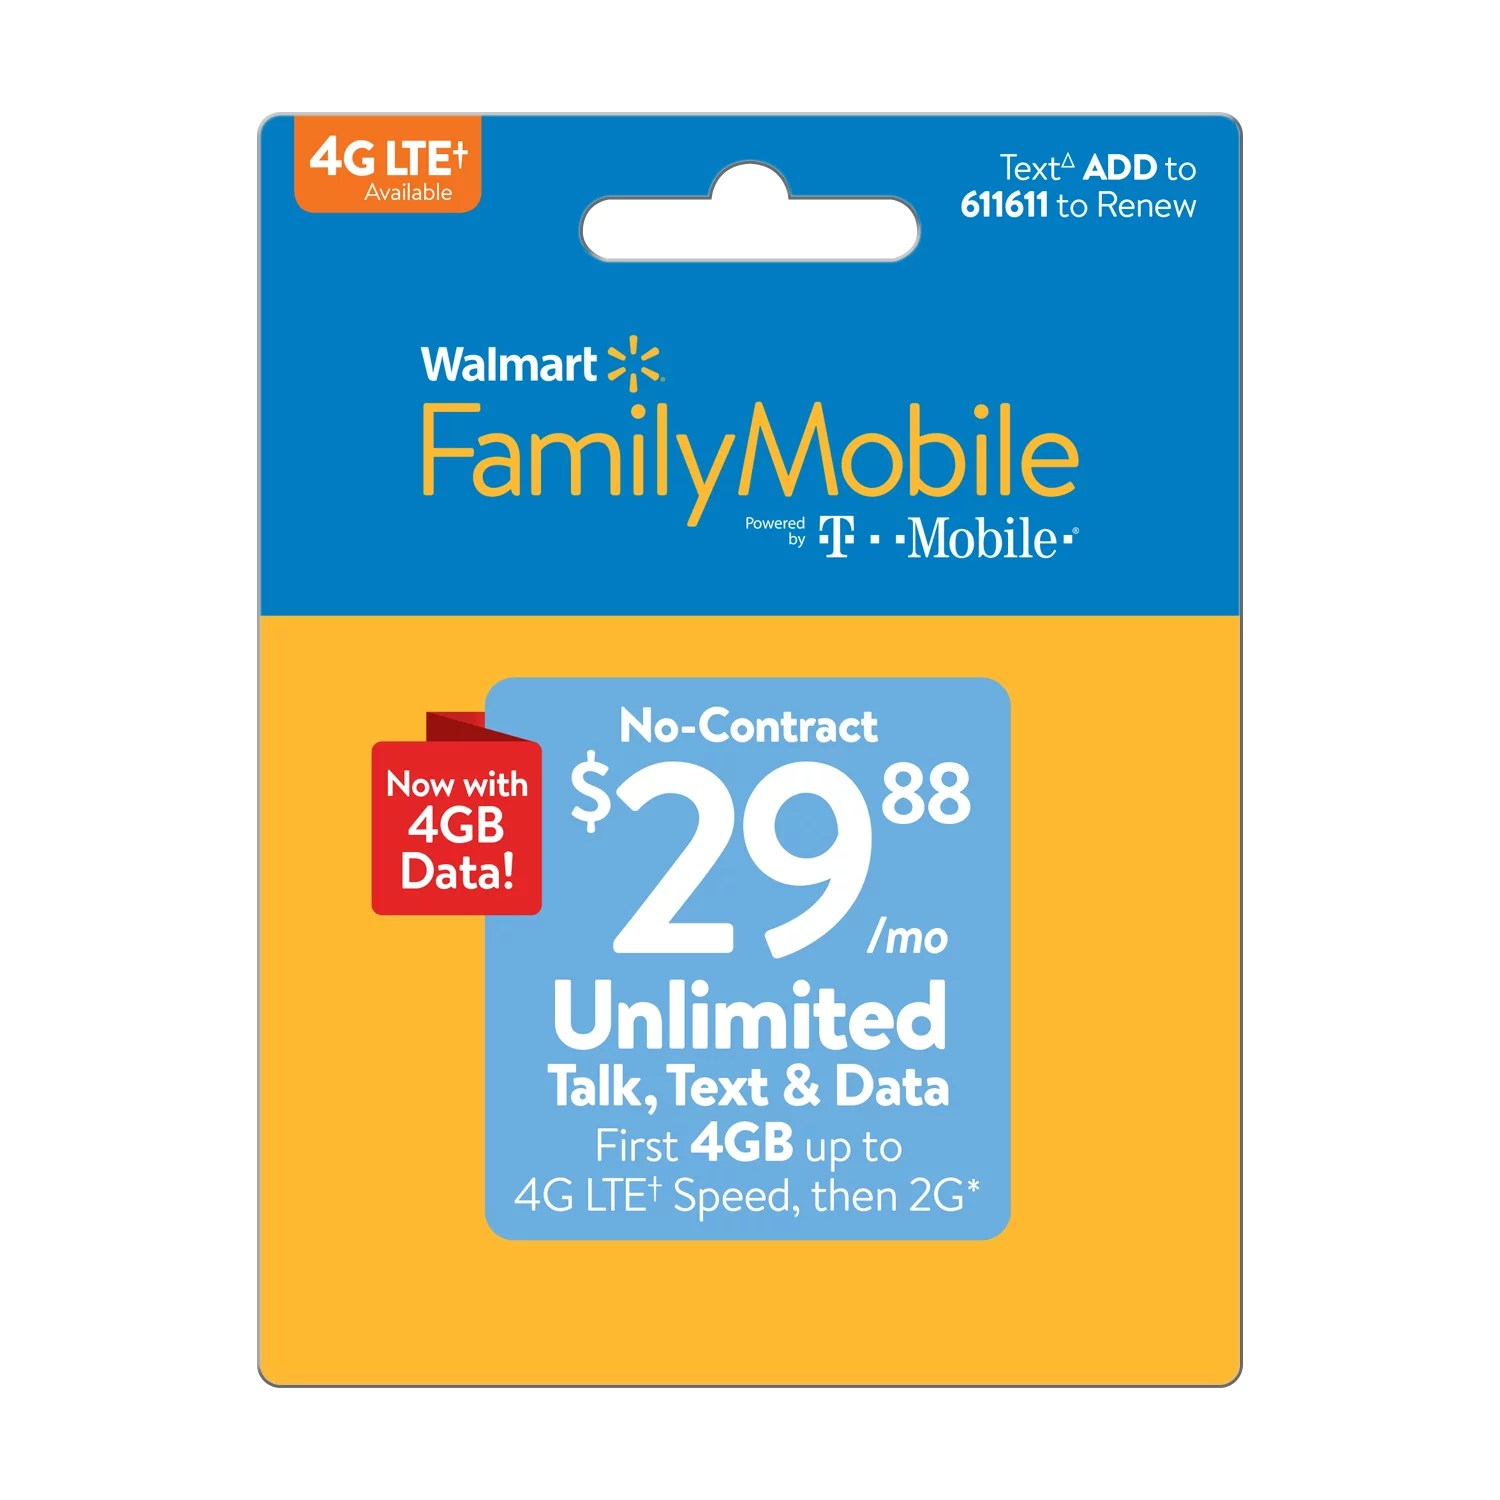 T Mobile Shop Berlin Family Mobile Walmart